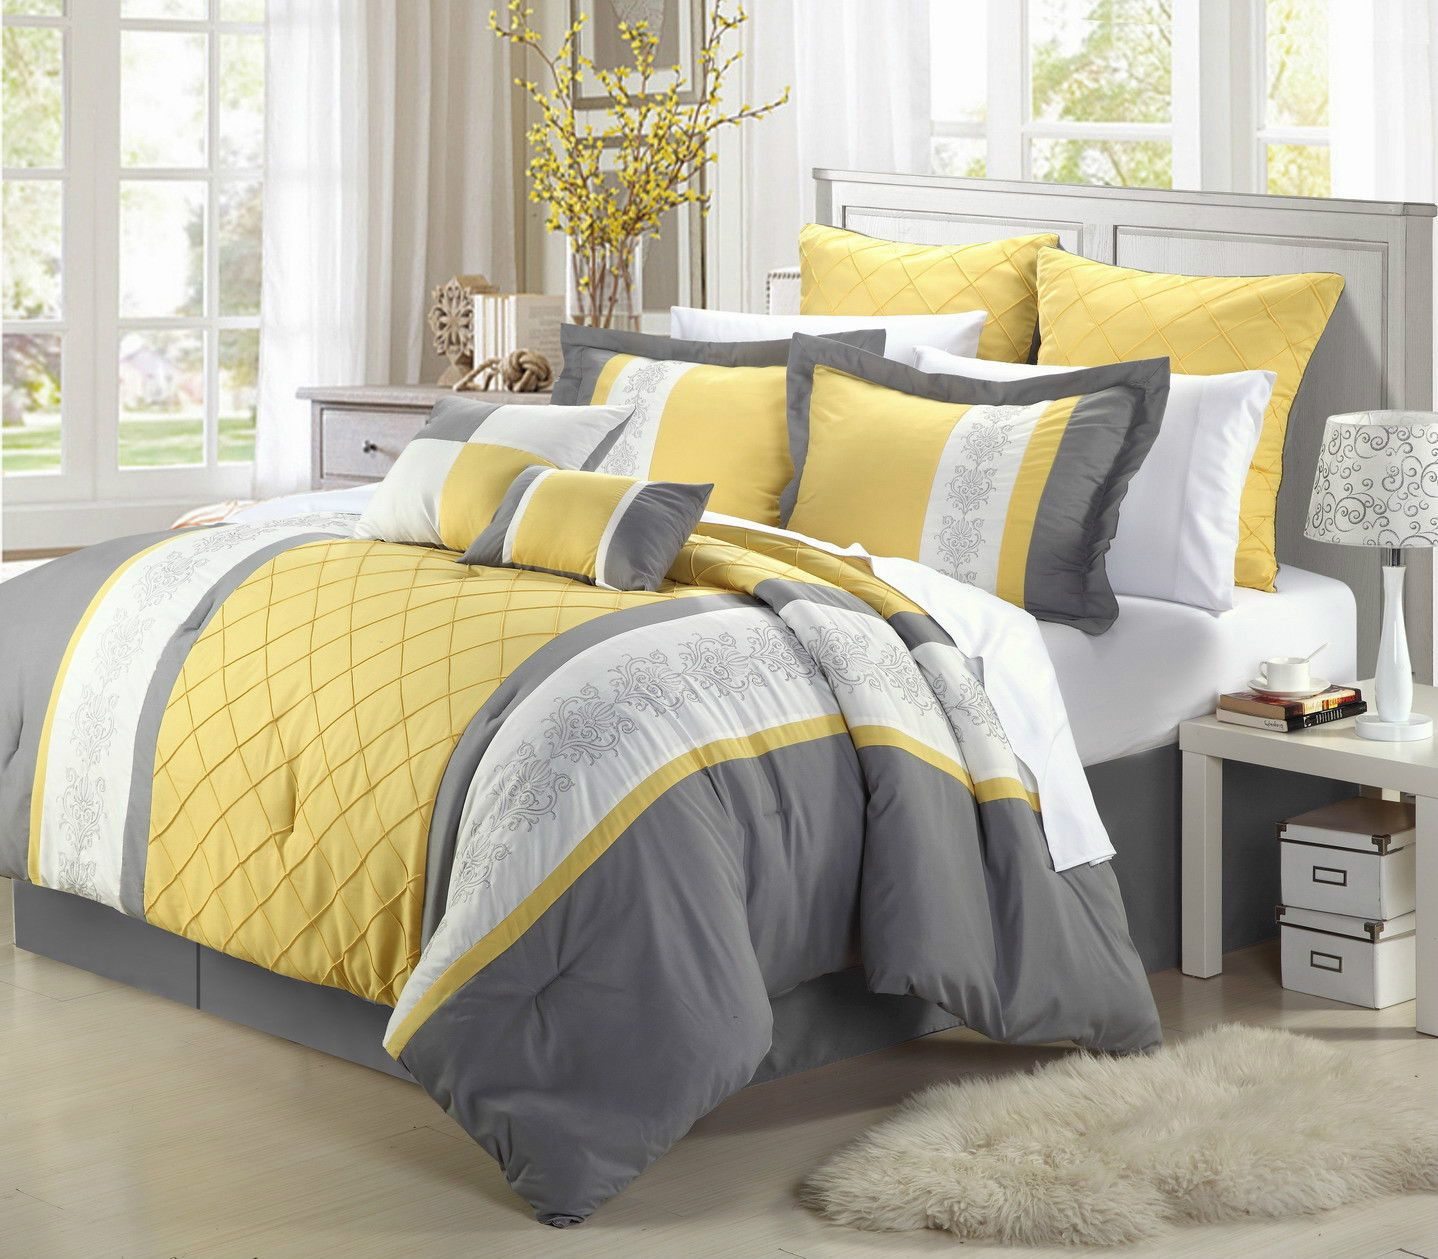 Details About Livingston Yellow And Grey Comforter Bed In